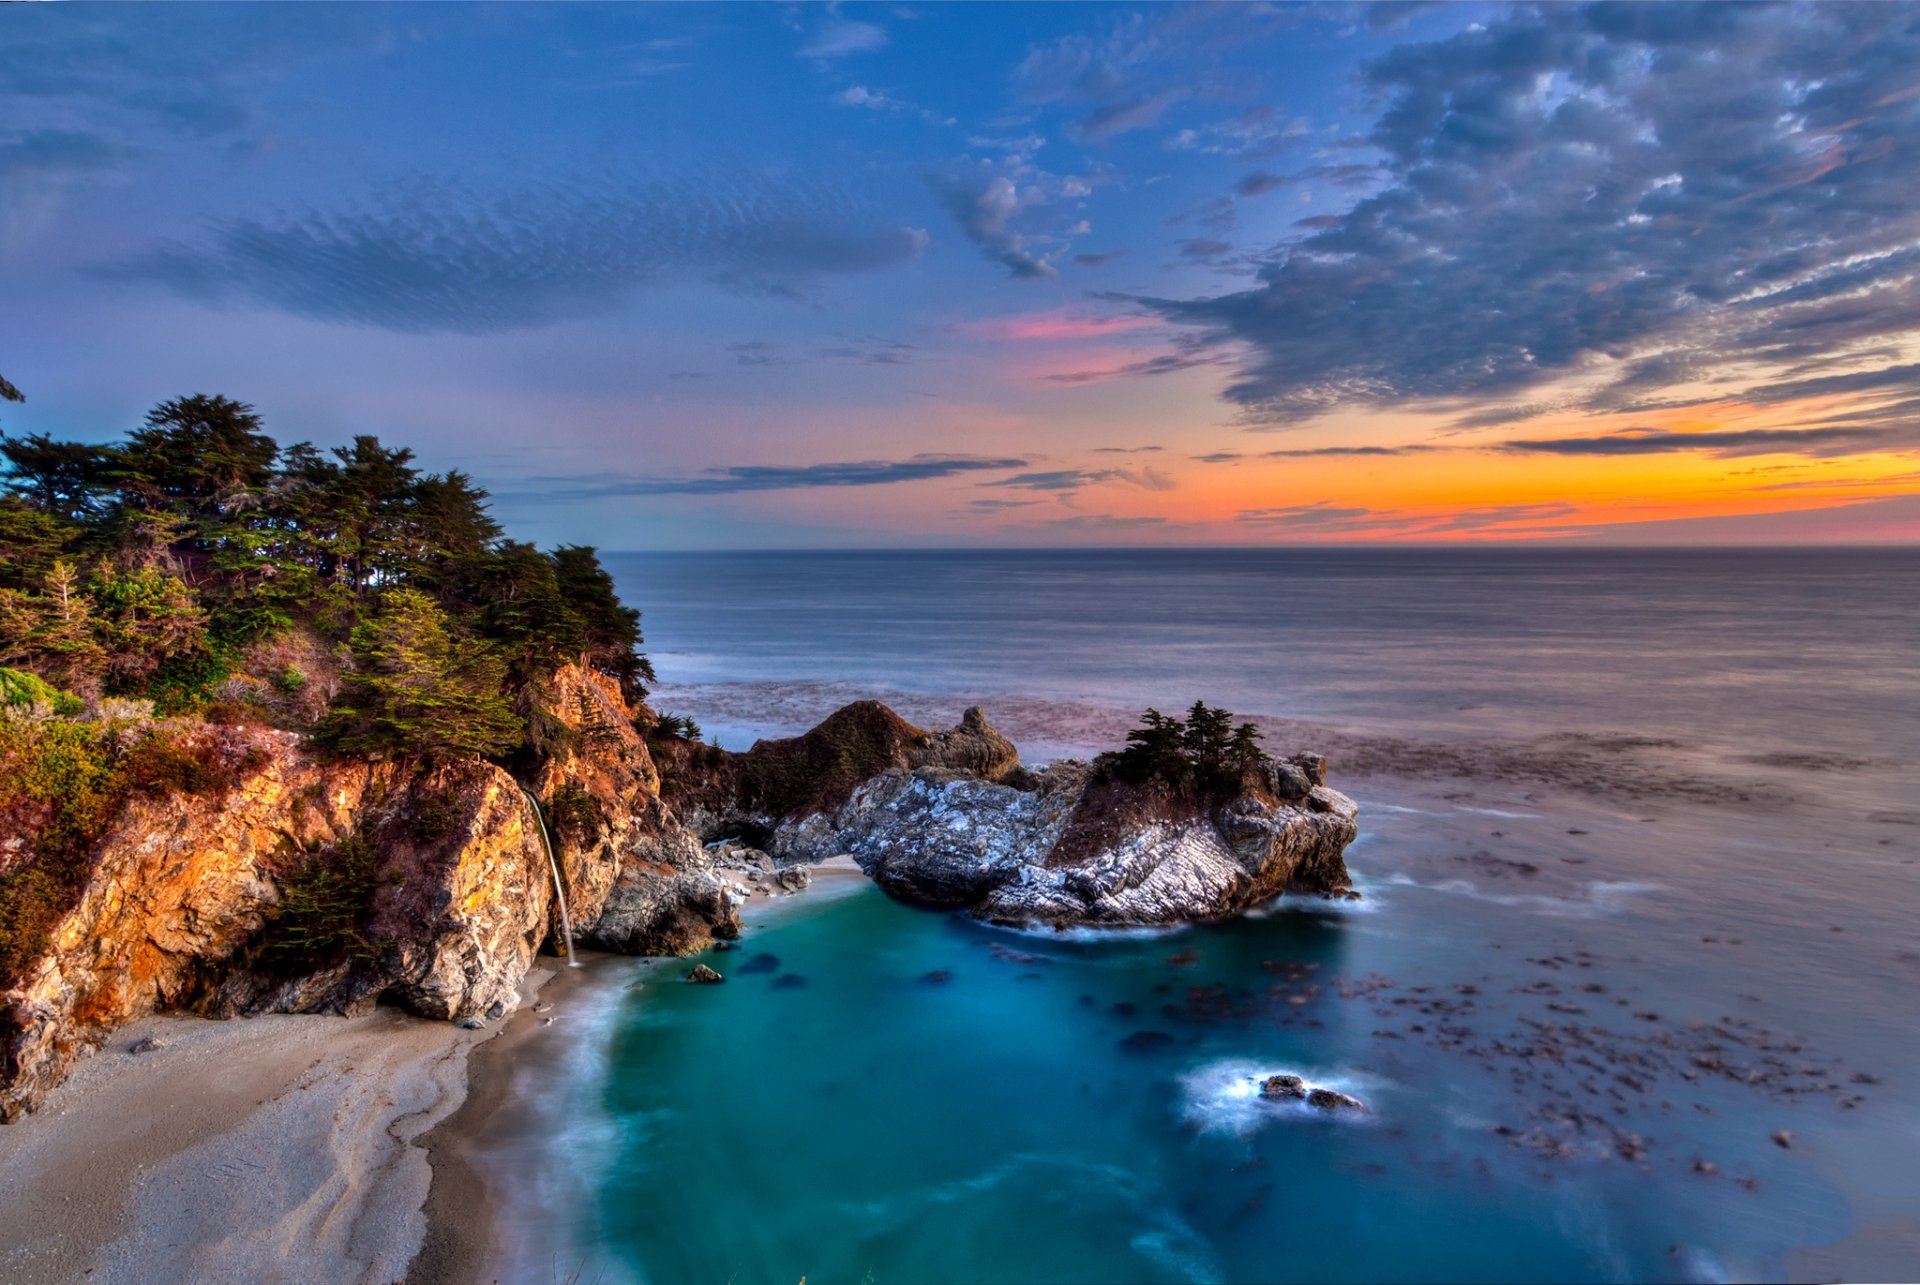 Julia Pfeiffer Burns State Park, California - places to visit in the world